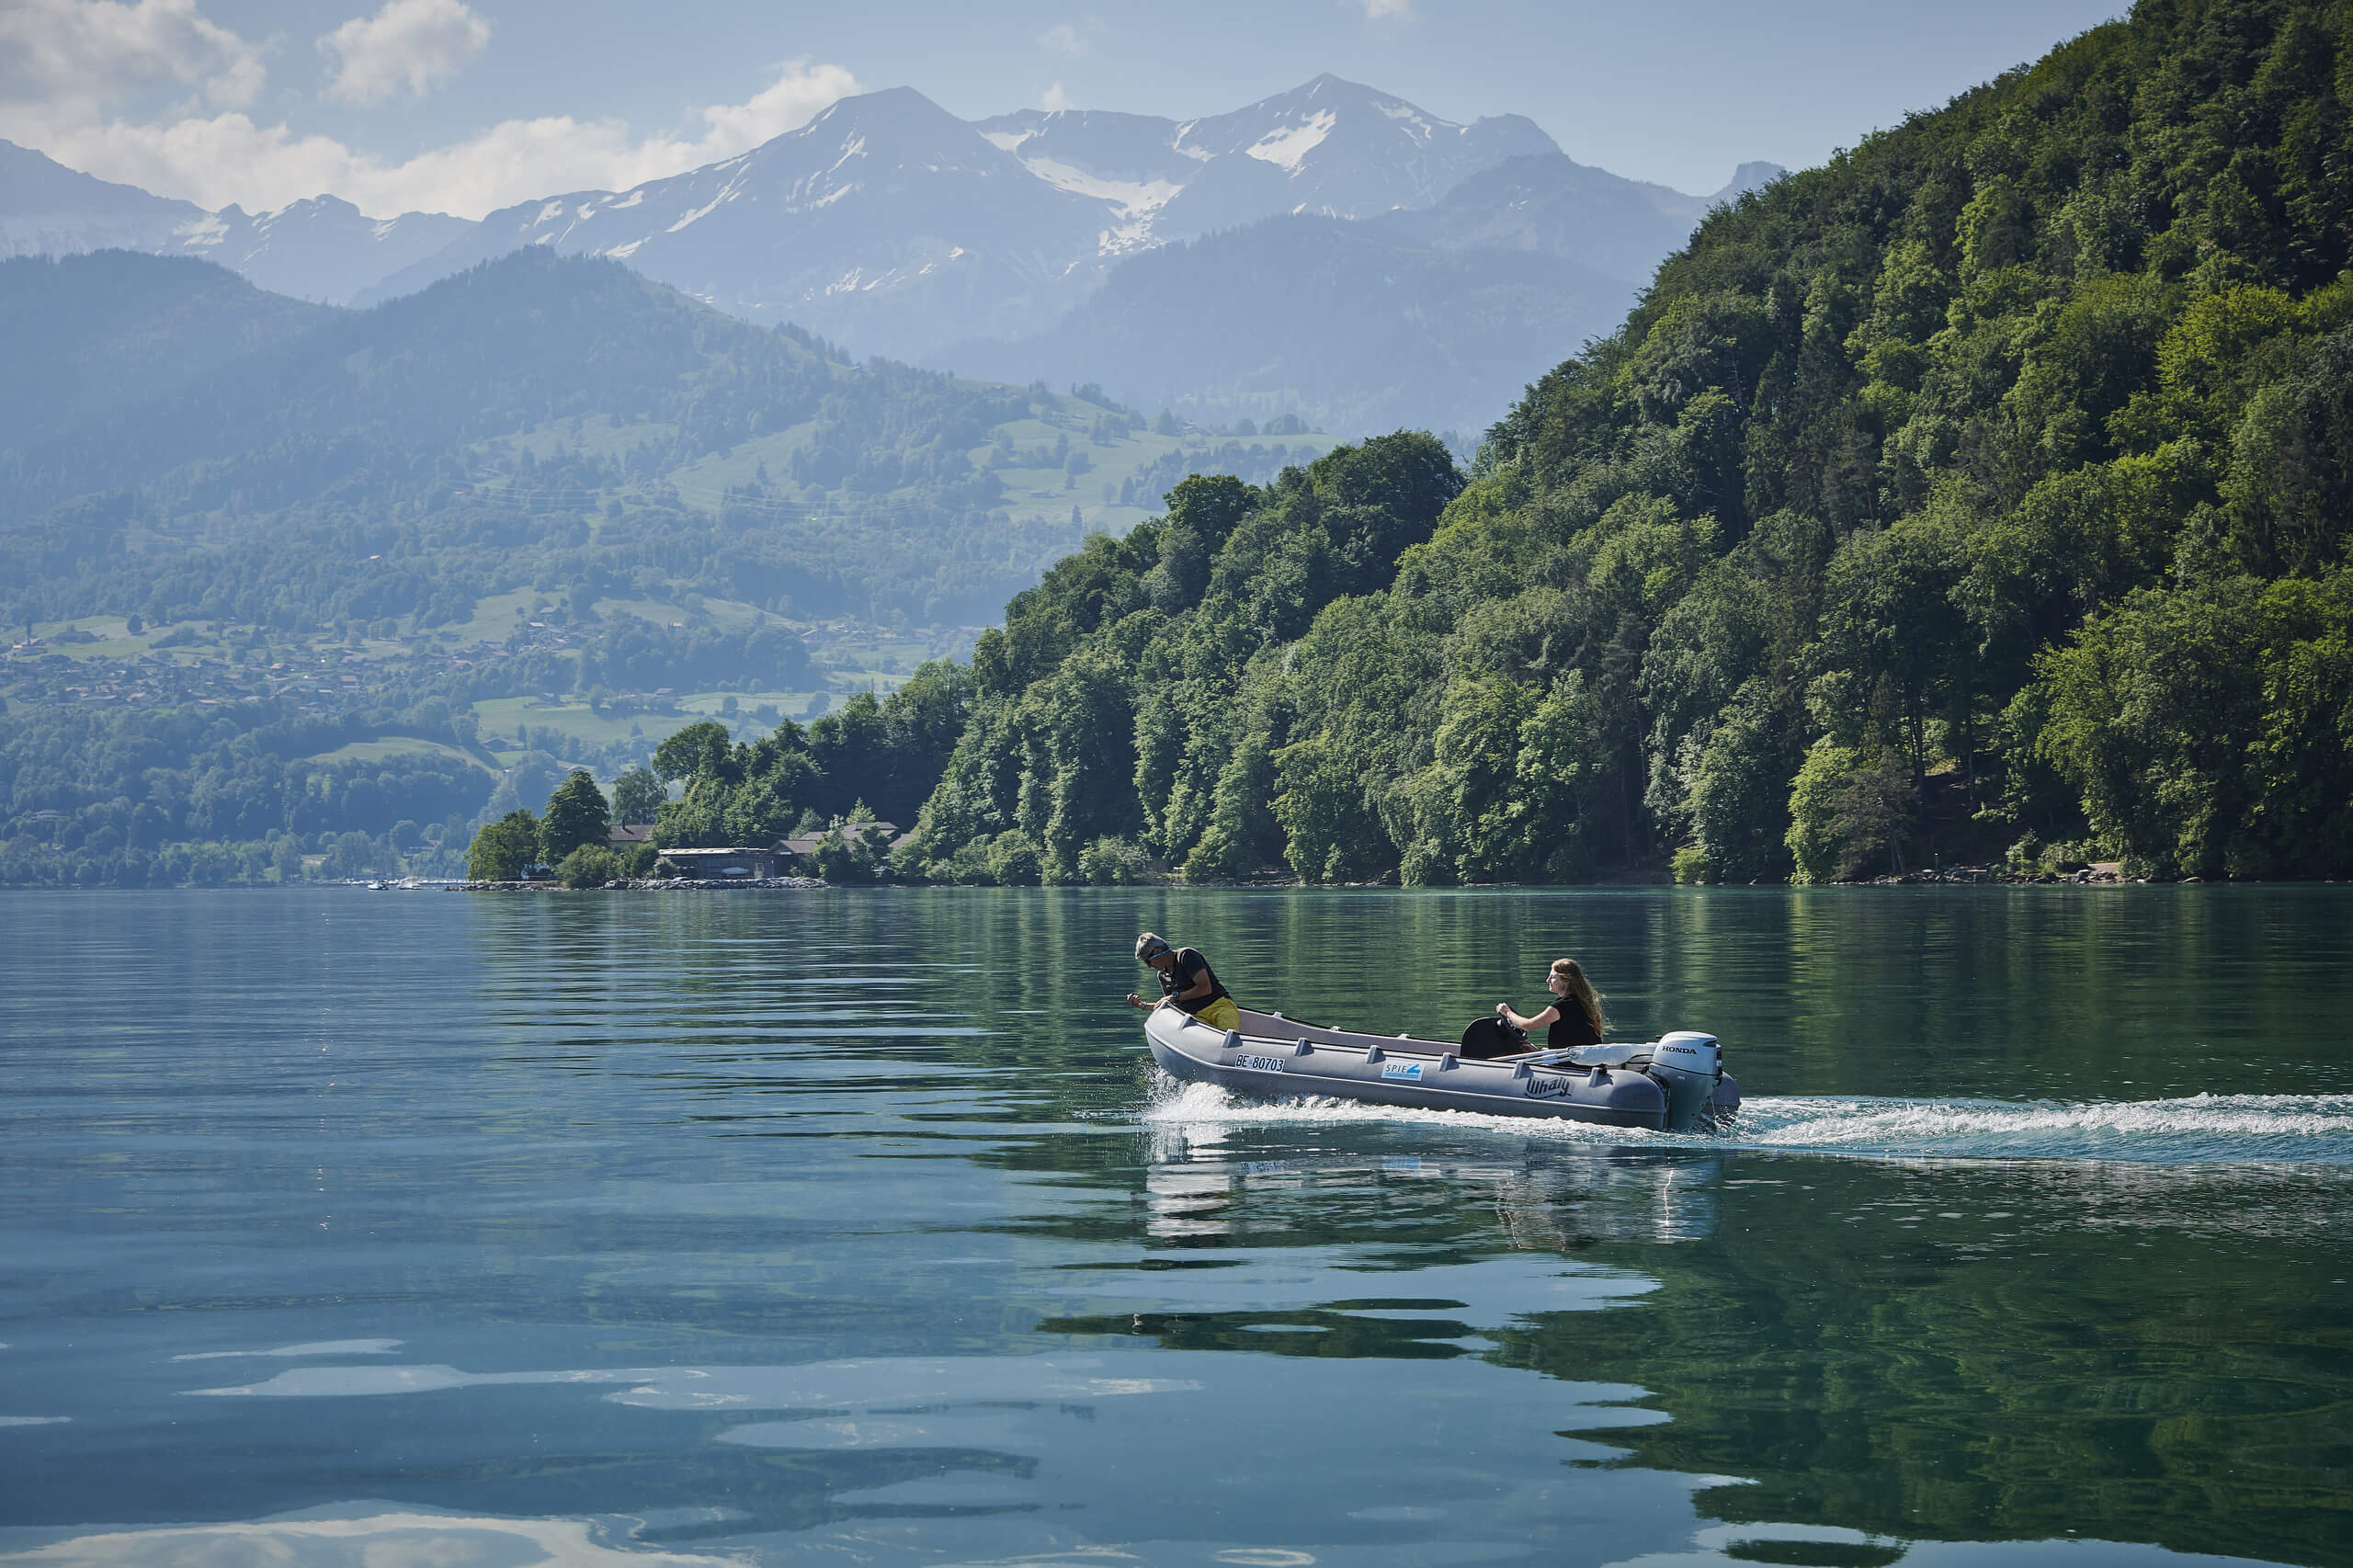 faulensee-thunersee-motorboot-wasser-sommer-alpen